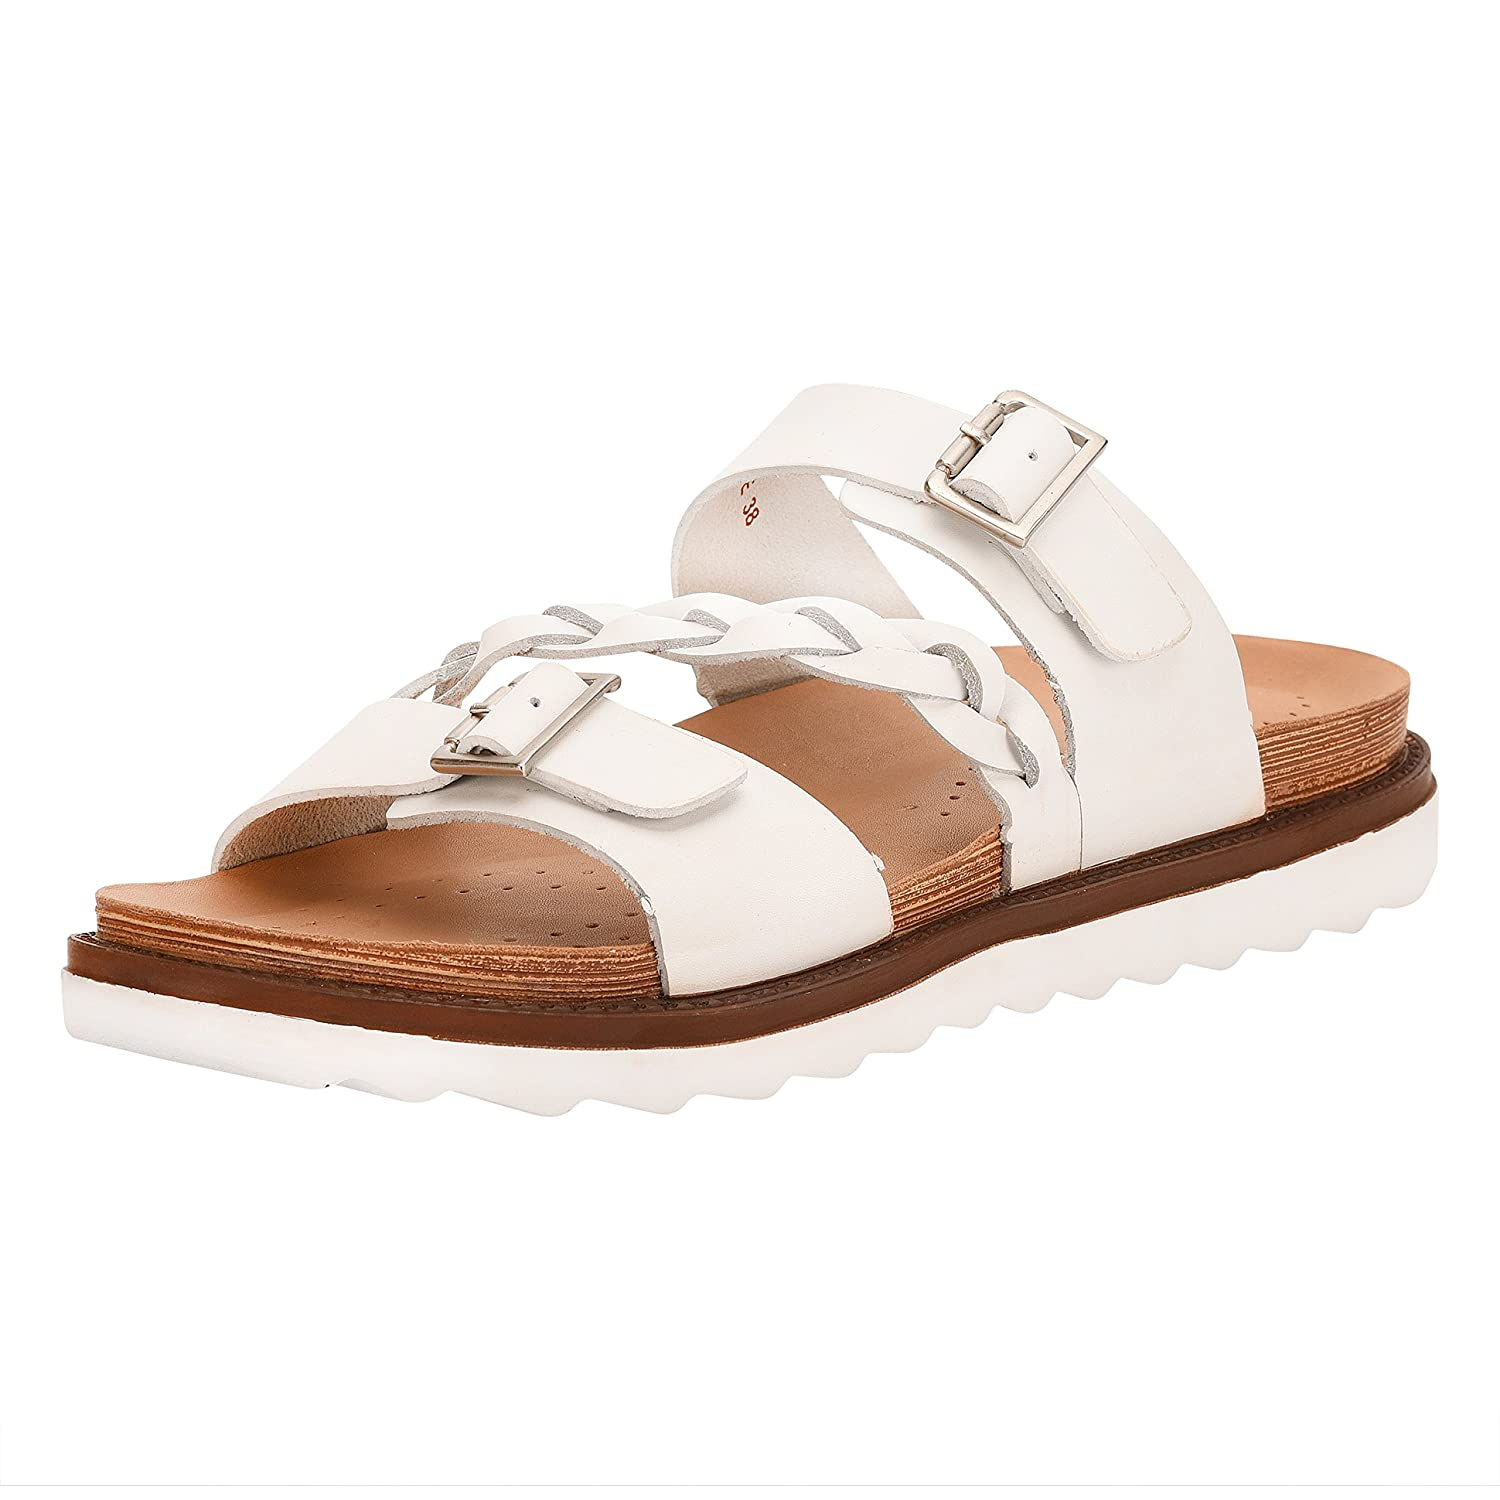 Liberty Women's Leather Slide On Sandals Double Strap Buckle Braided Platforms B07BWH3599 8 M US|Pearl White